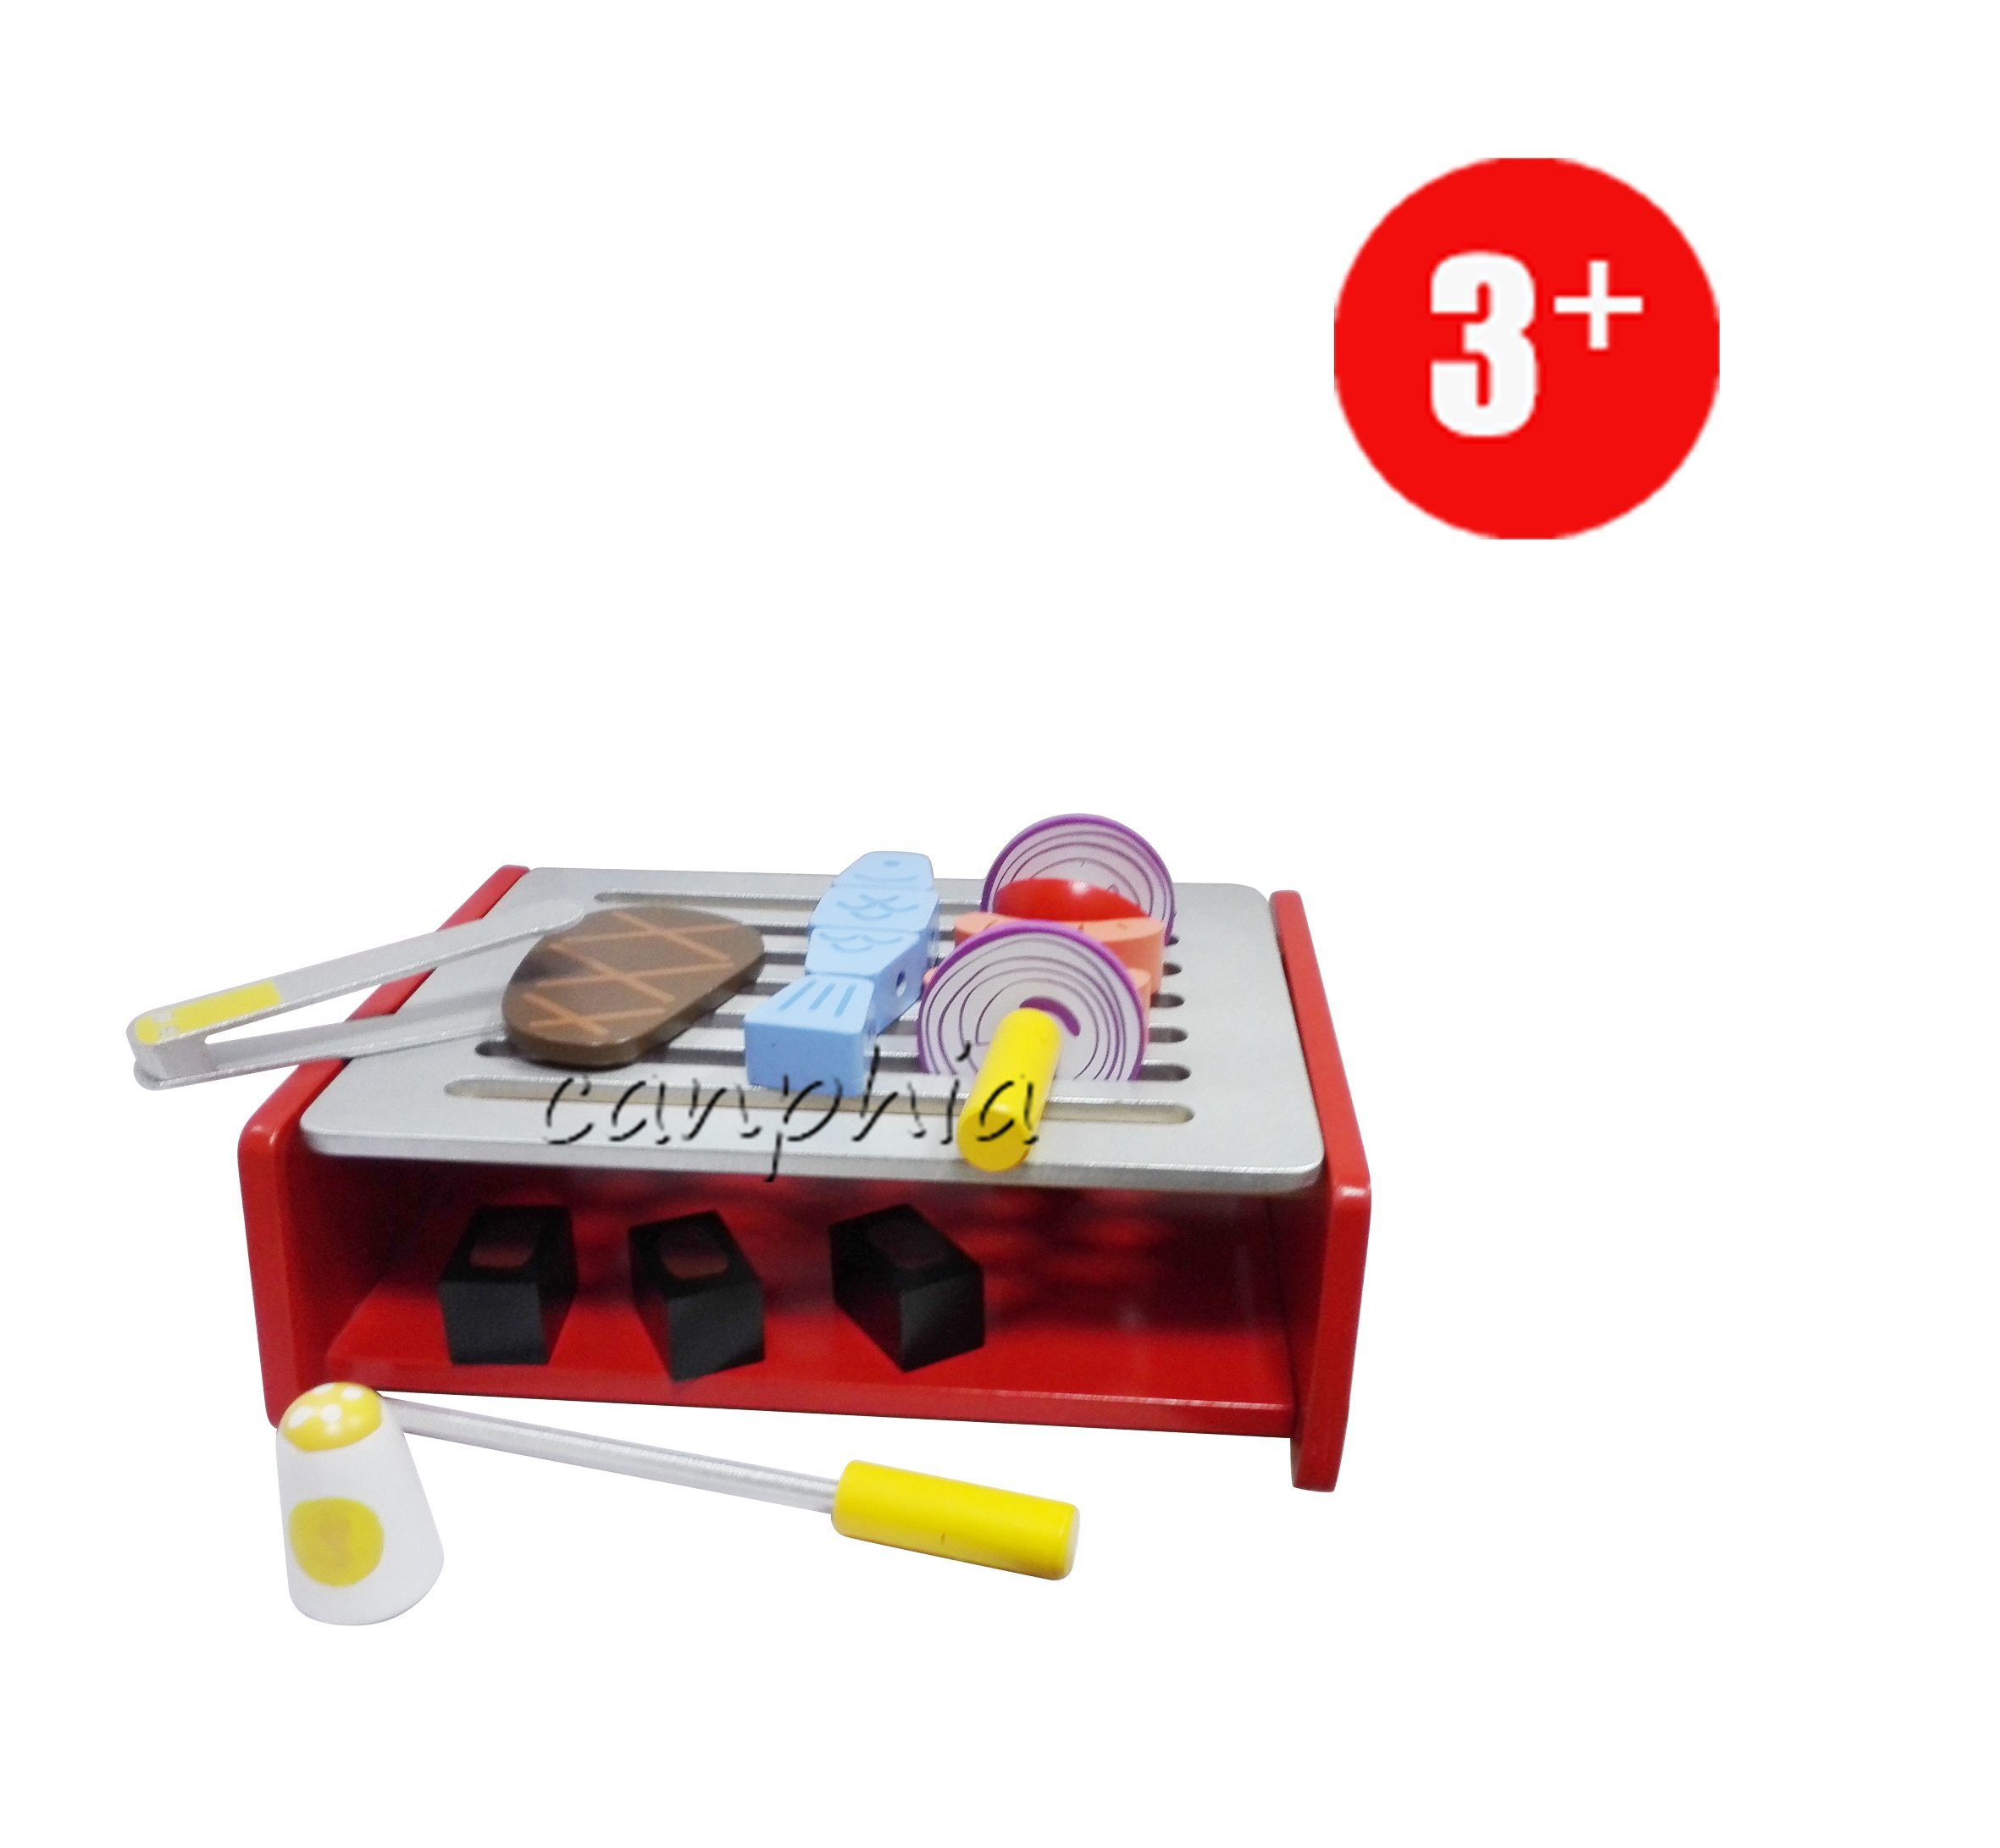 Pretend Kitchen Toy, Popular Toy Kitchen Set and Wooden DIY Kitchen Toy